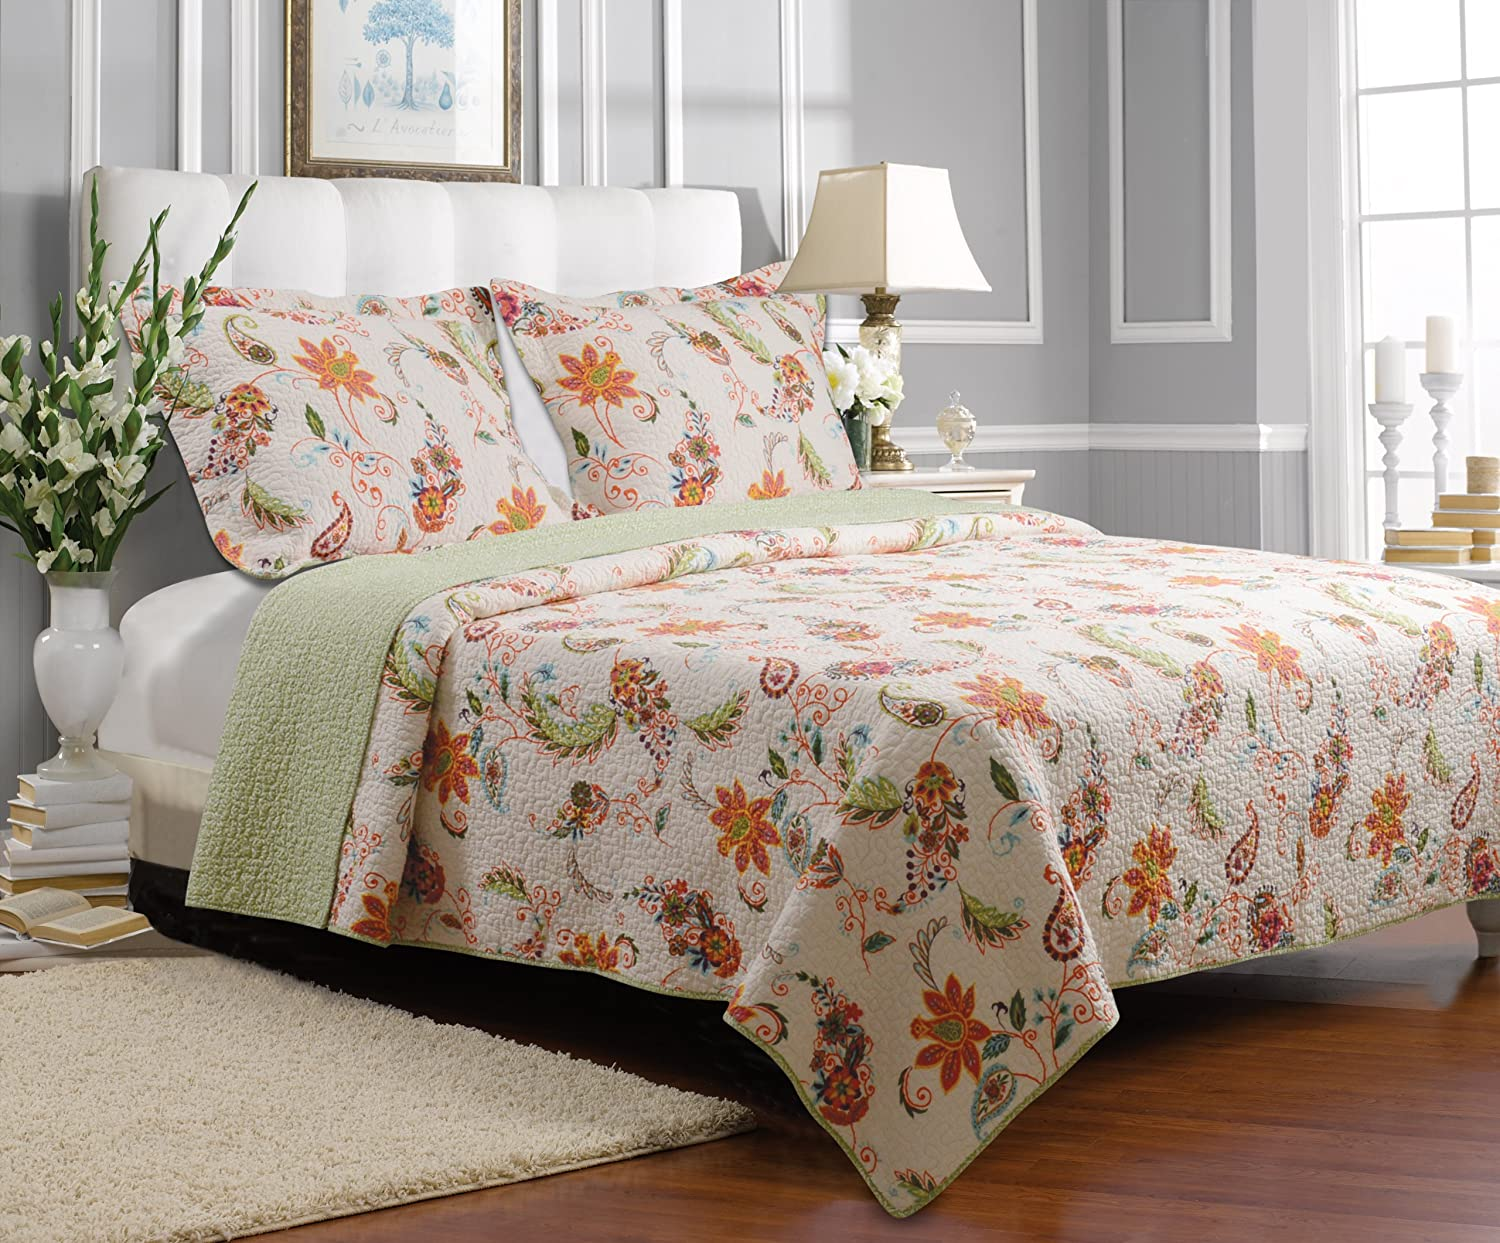 Greenland Home Barcelona 3-Piece Quilt Set, Full/Queen